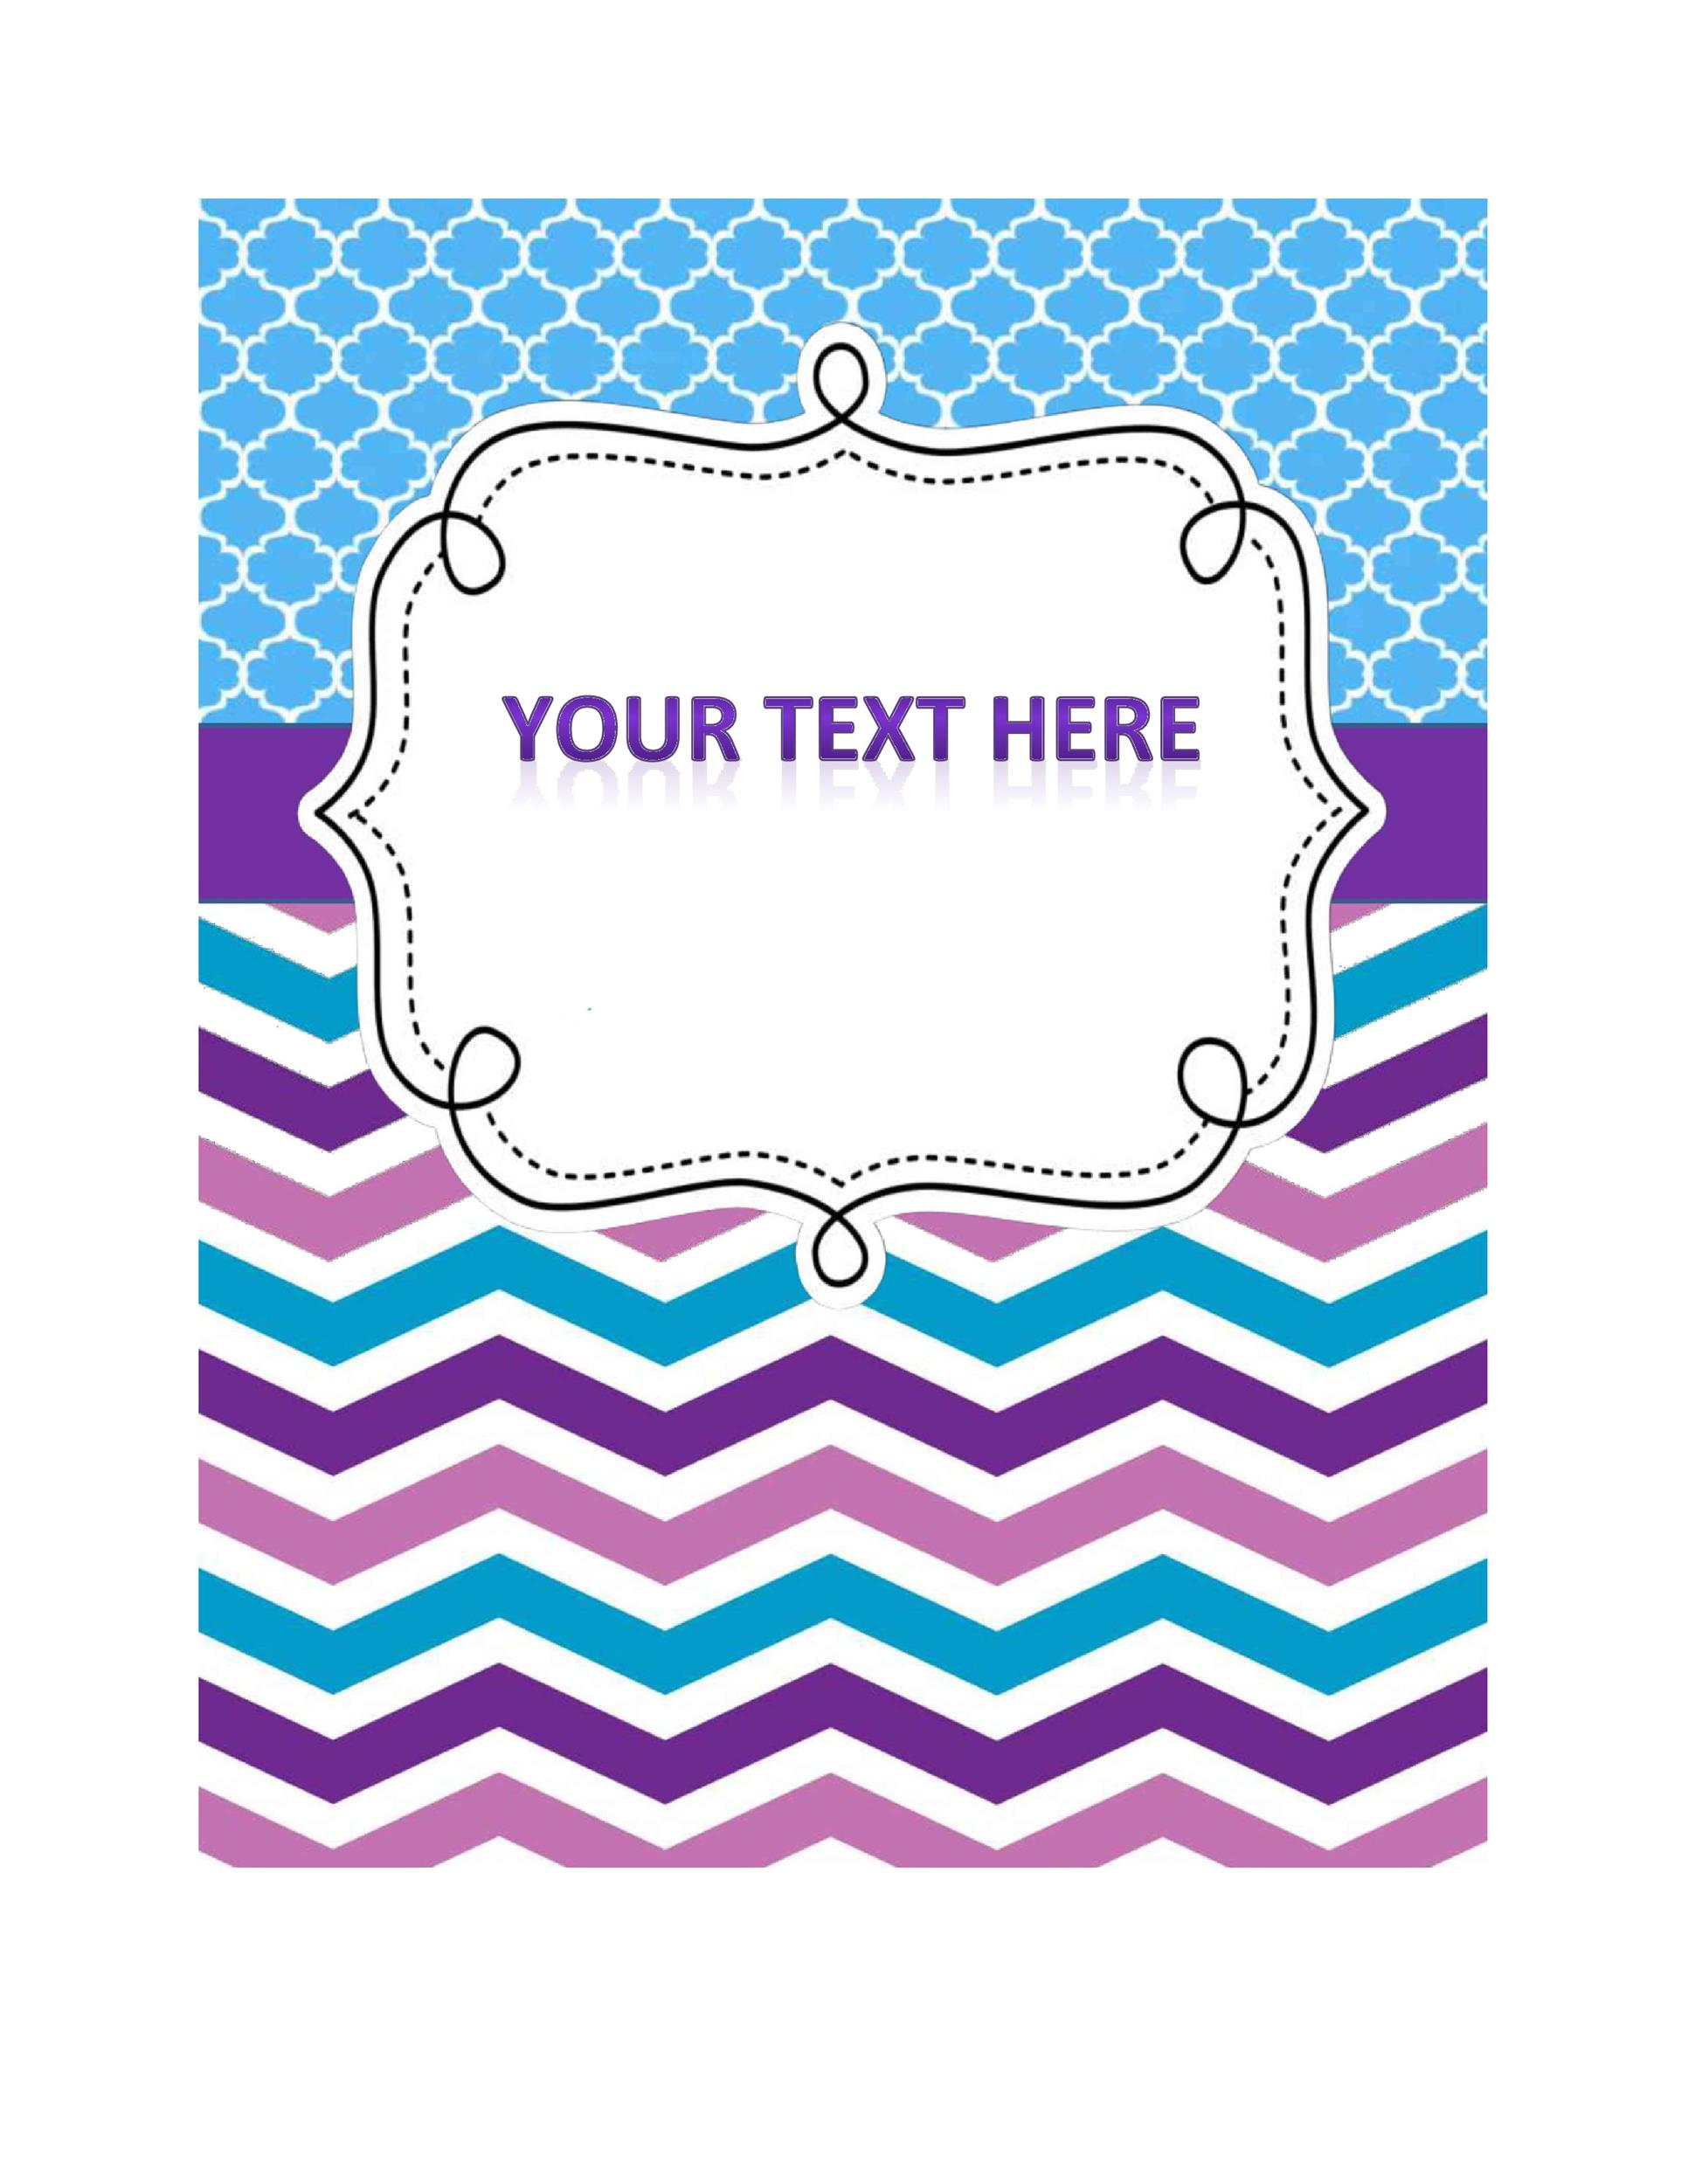 graphic relating to Binder Cover Printable referred to as 35 Beautifull Binder Address Templates ᐅ Template Lab